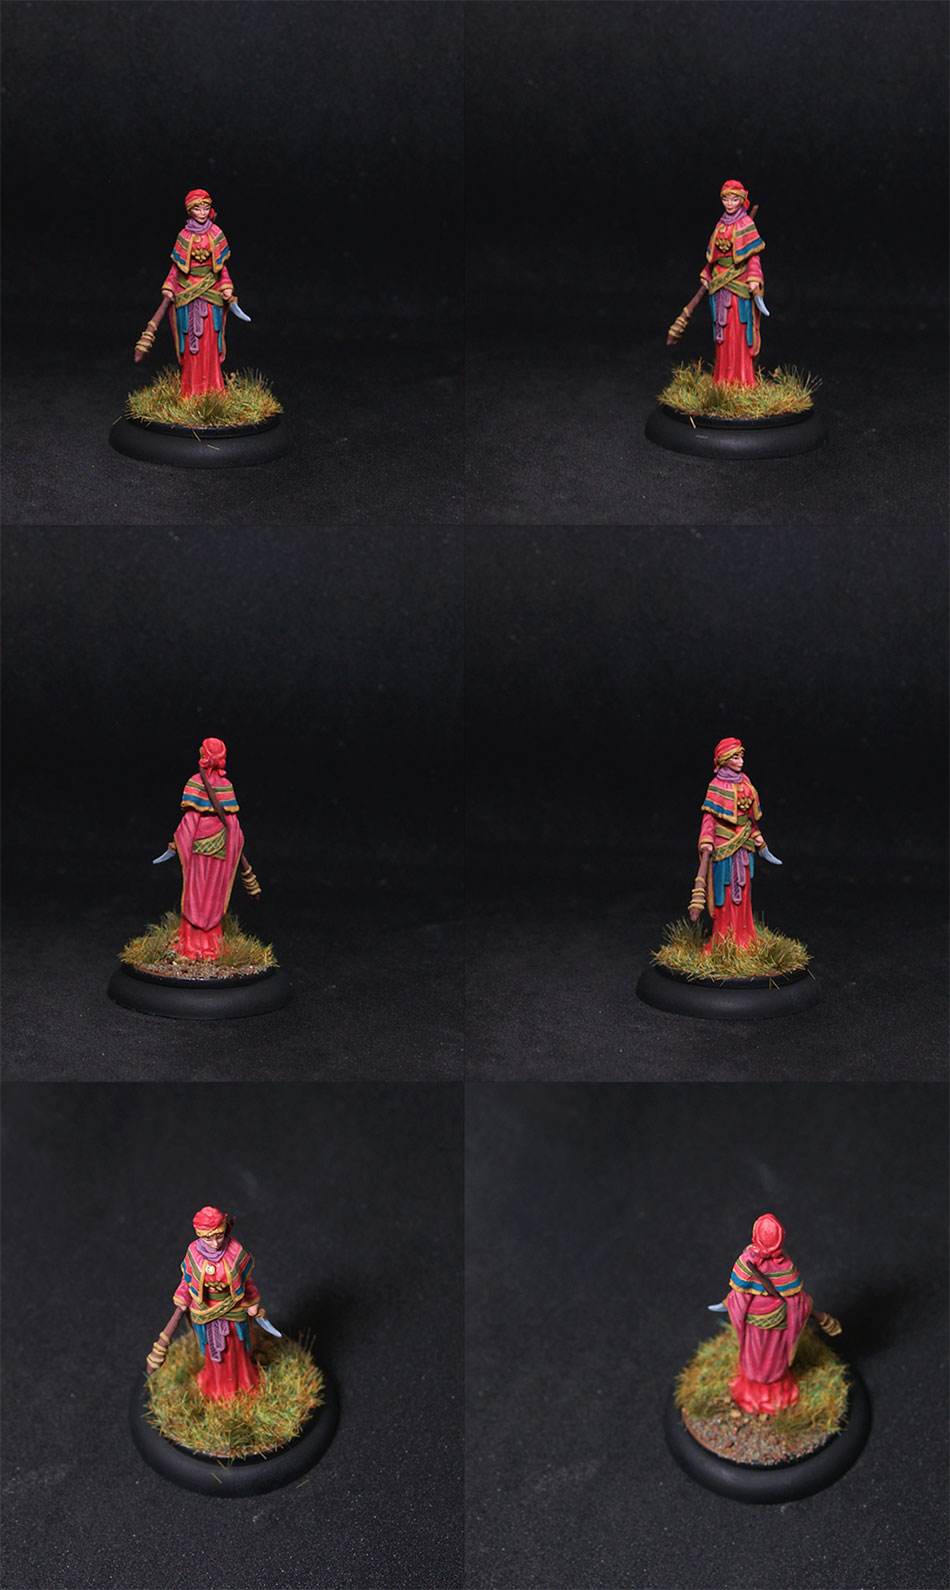 Coolminiornot Zombicide Antha Female Healer